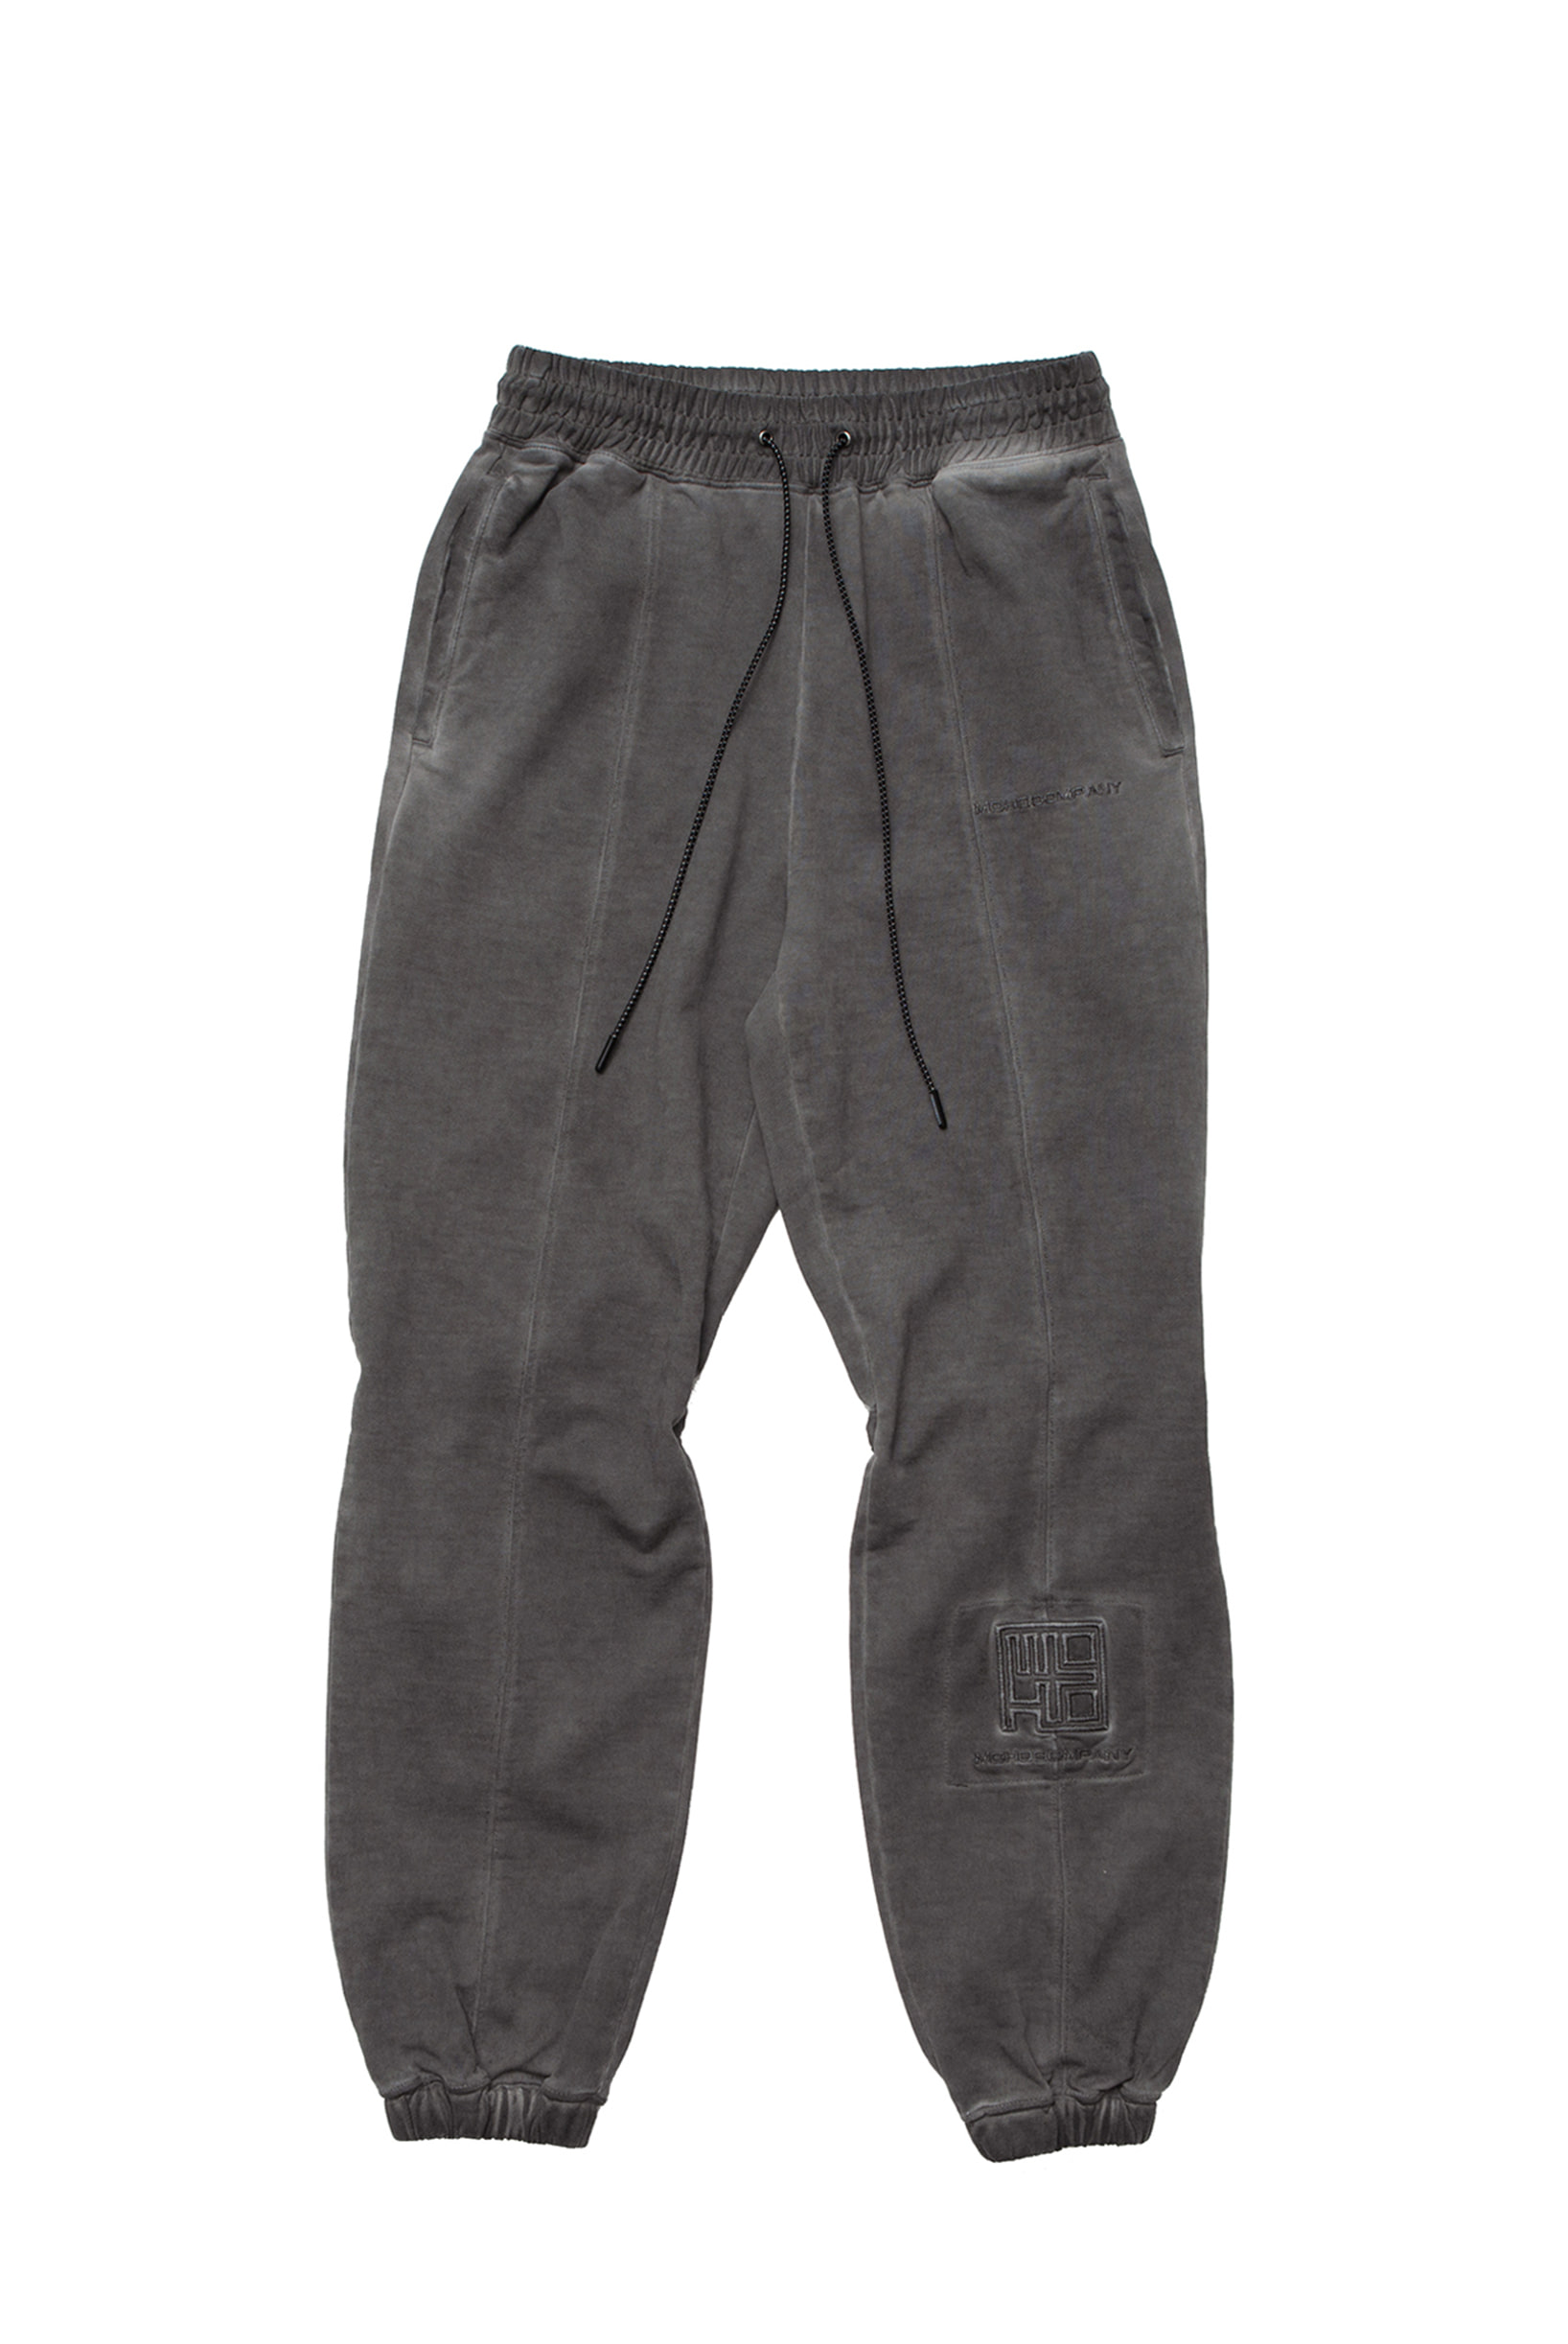 WASHED EFFECT LOUNGE PANTS (CHARCOAL)